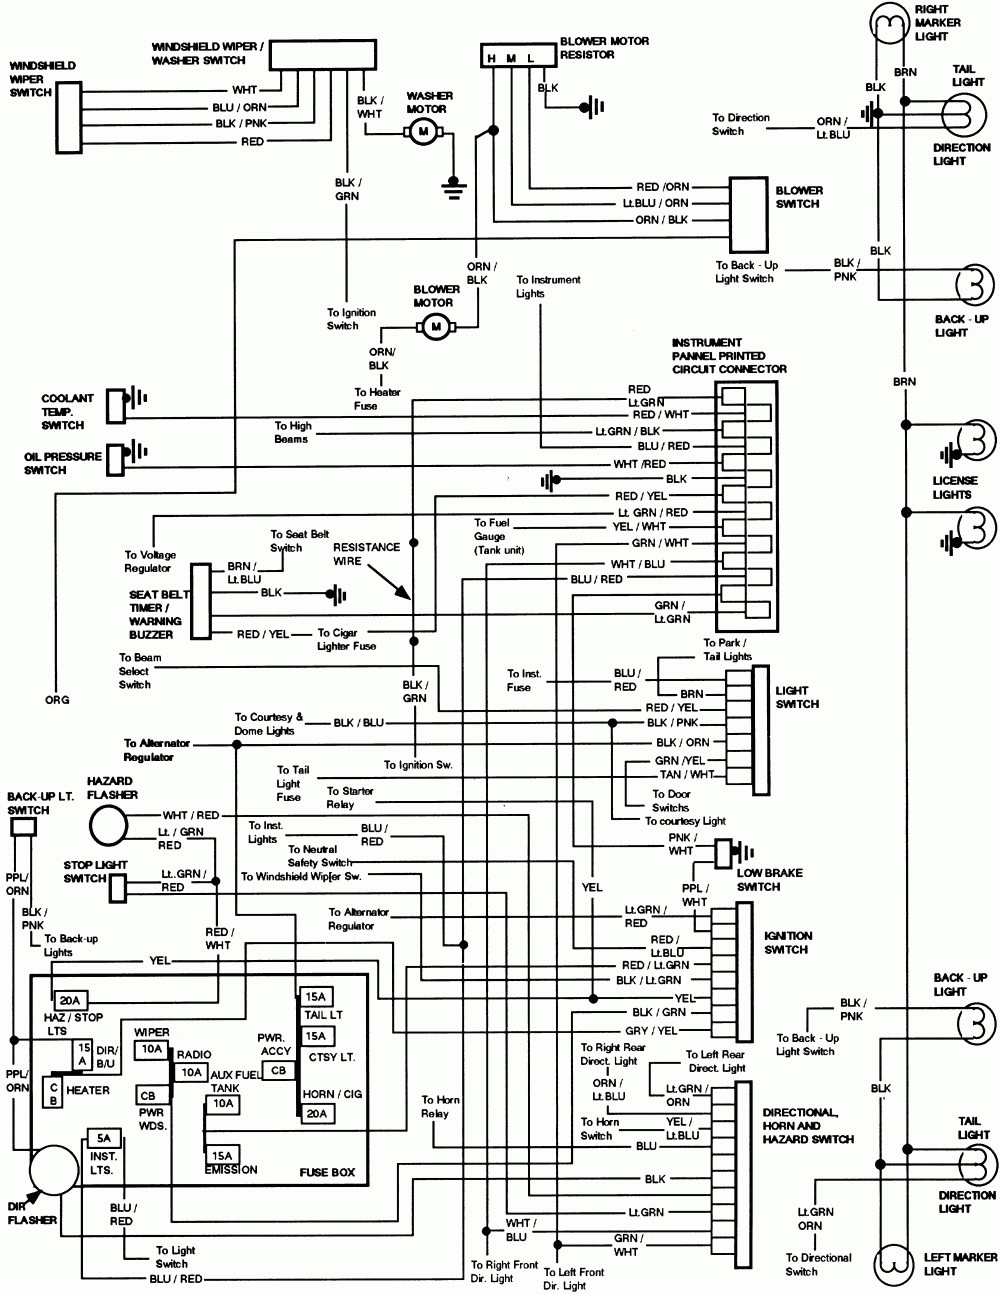 99 ford f 150 4x4 wiring diagram wiring diagram99 super duty 4x4 wiring diagram wiring diagram